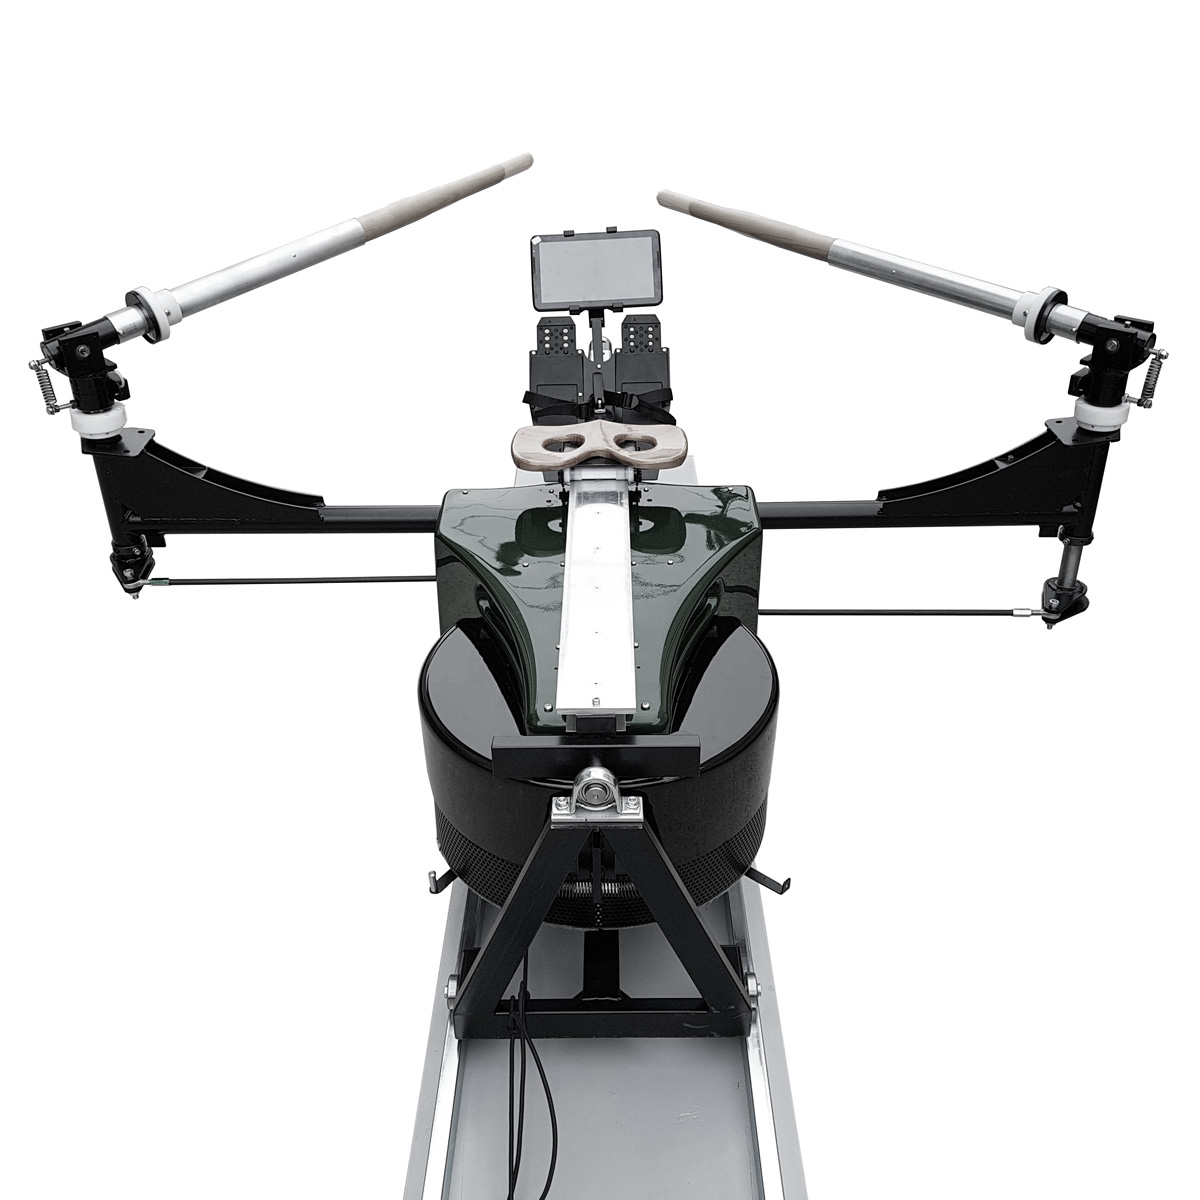 The Biorower S1pro is the most accurate rowing machine in the world - it comes with adjustble inboards, like your boat.